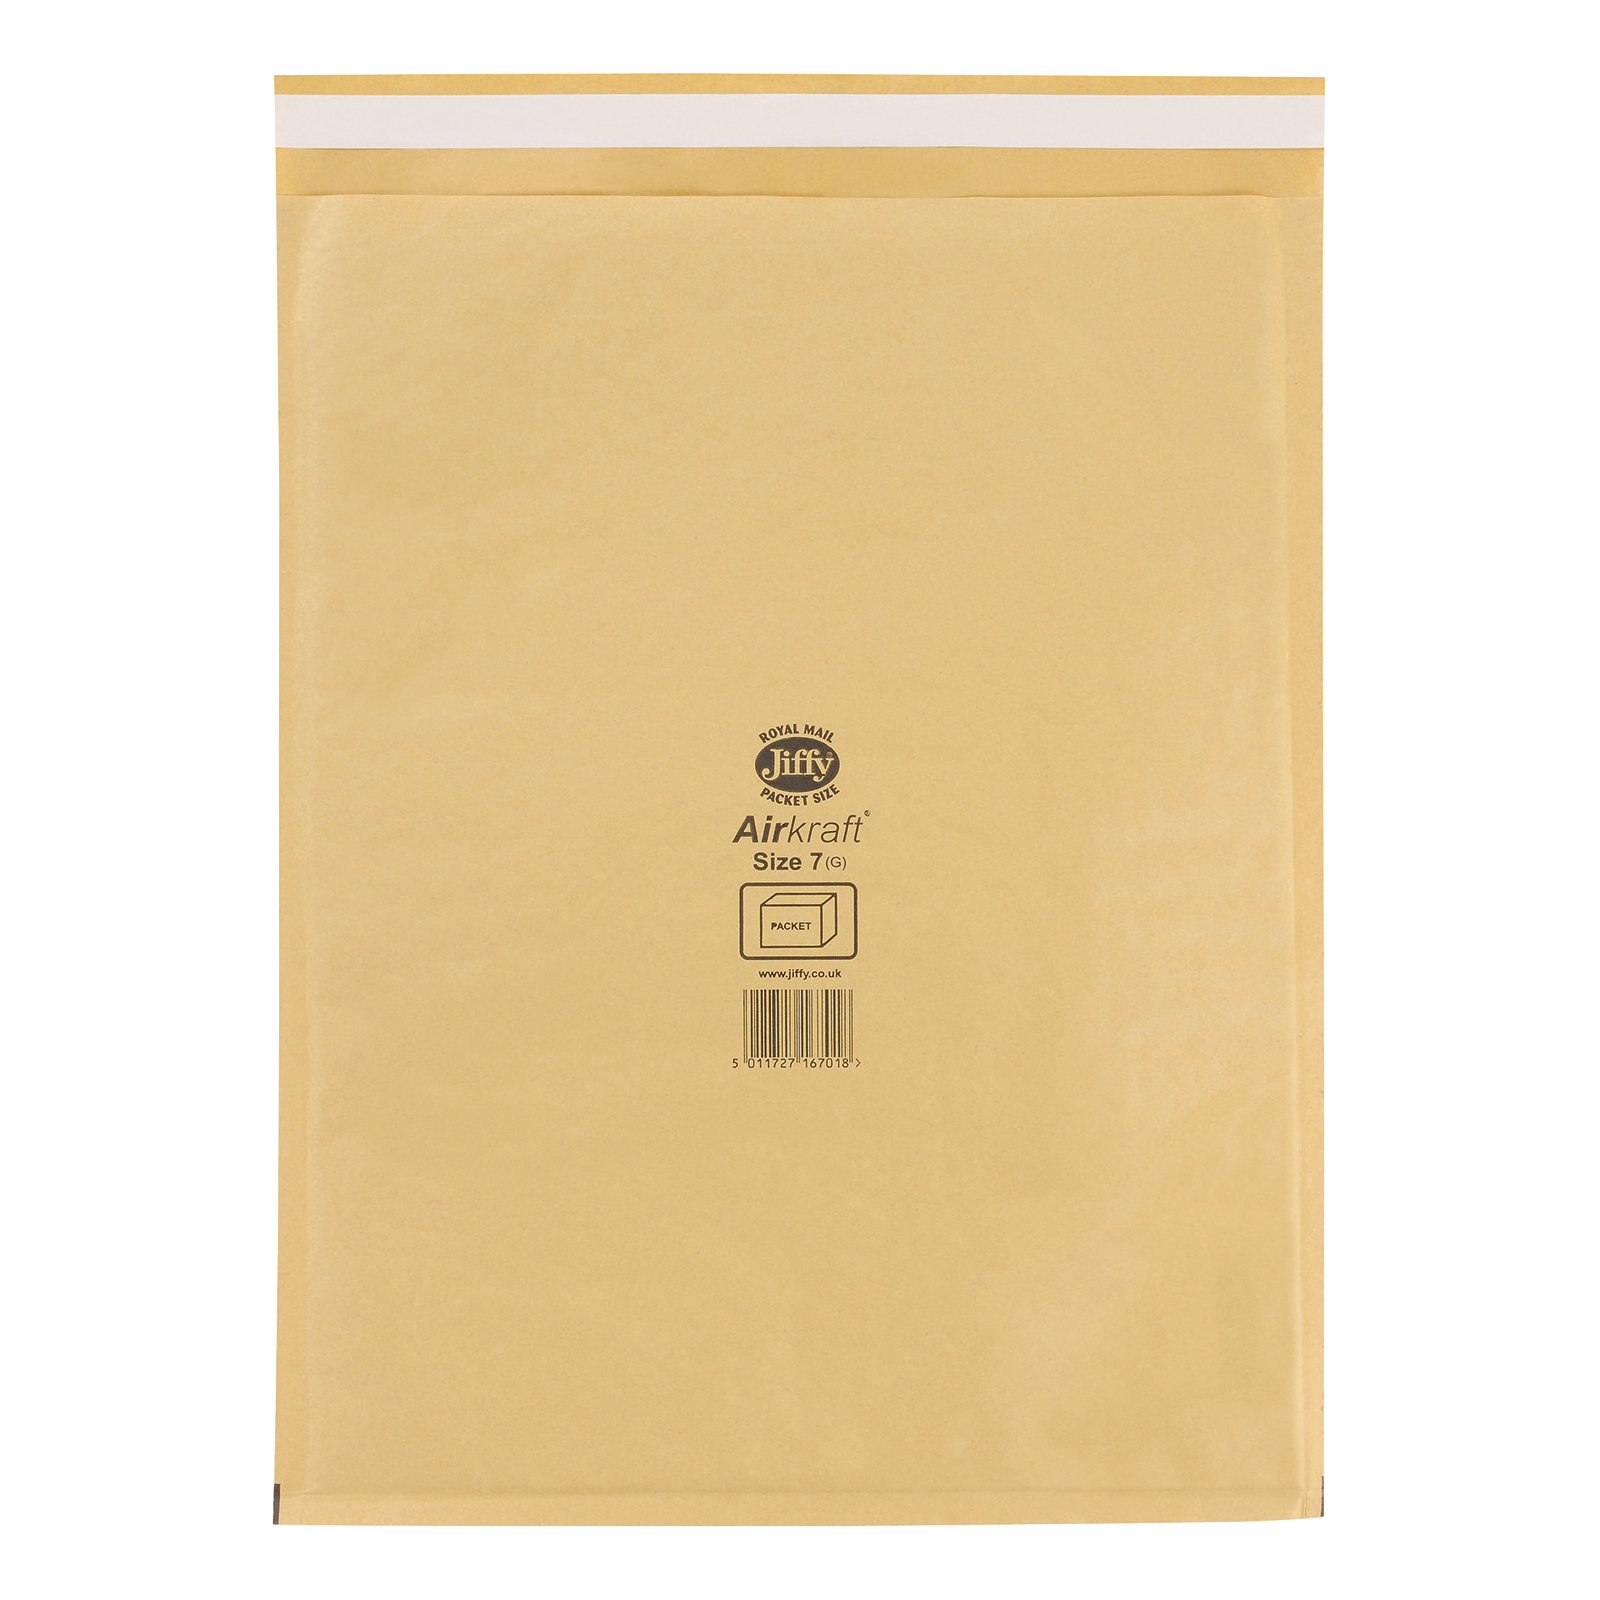 Padded Bags & Envelopes Jiffy Airkraft Bubble Bag Envelopes Size 7 Gold 340x445mm Ref JL-GO-7 Pack 50